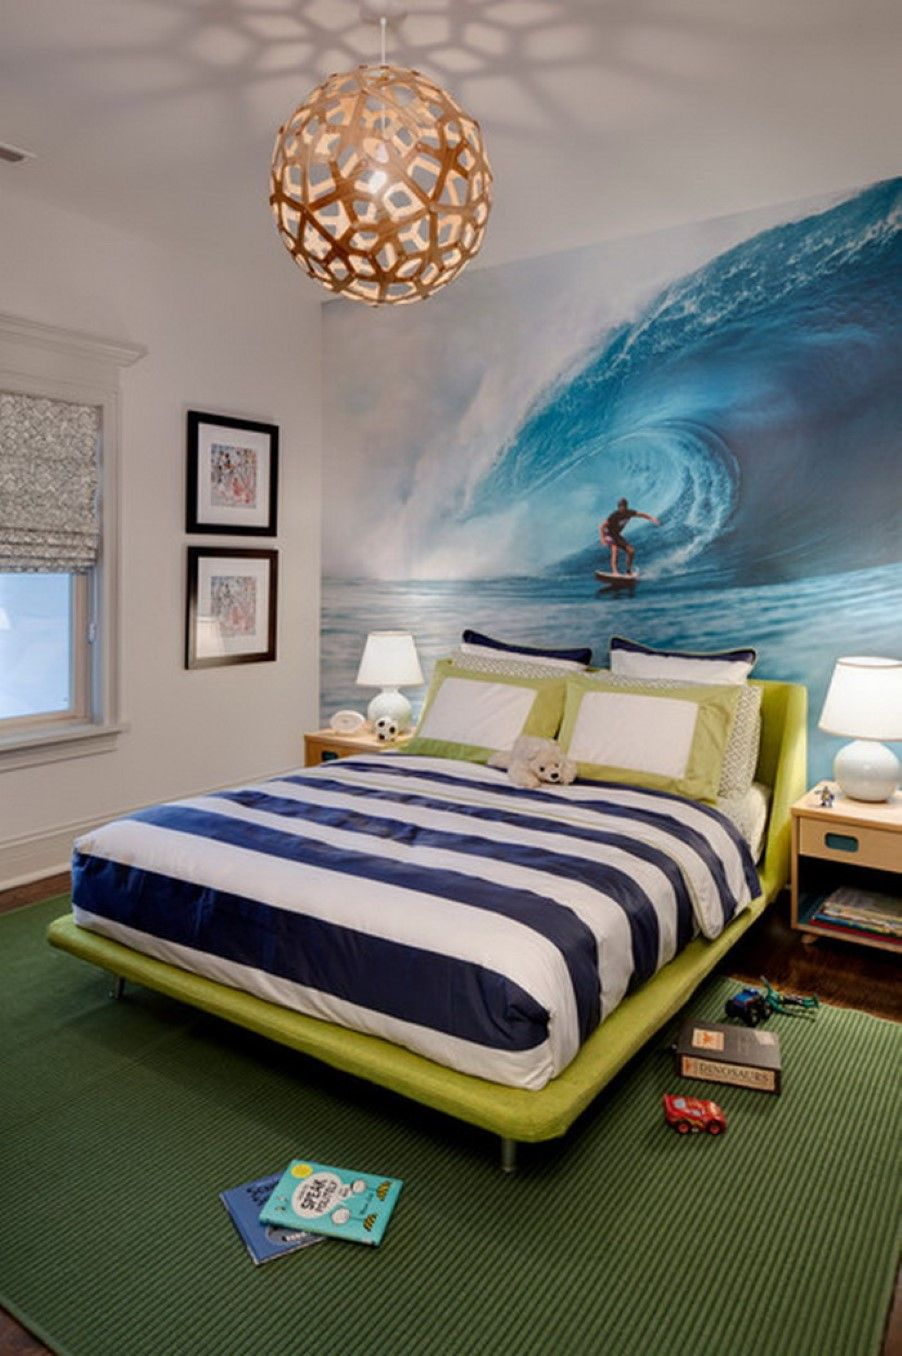 bedroom stylish bed frame back to ocean wall painting and flanked